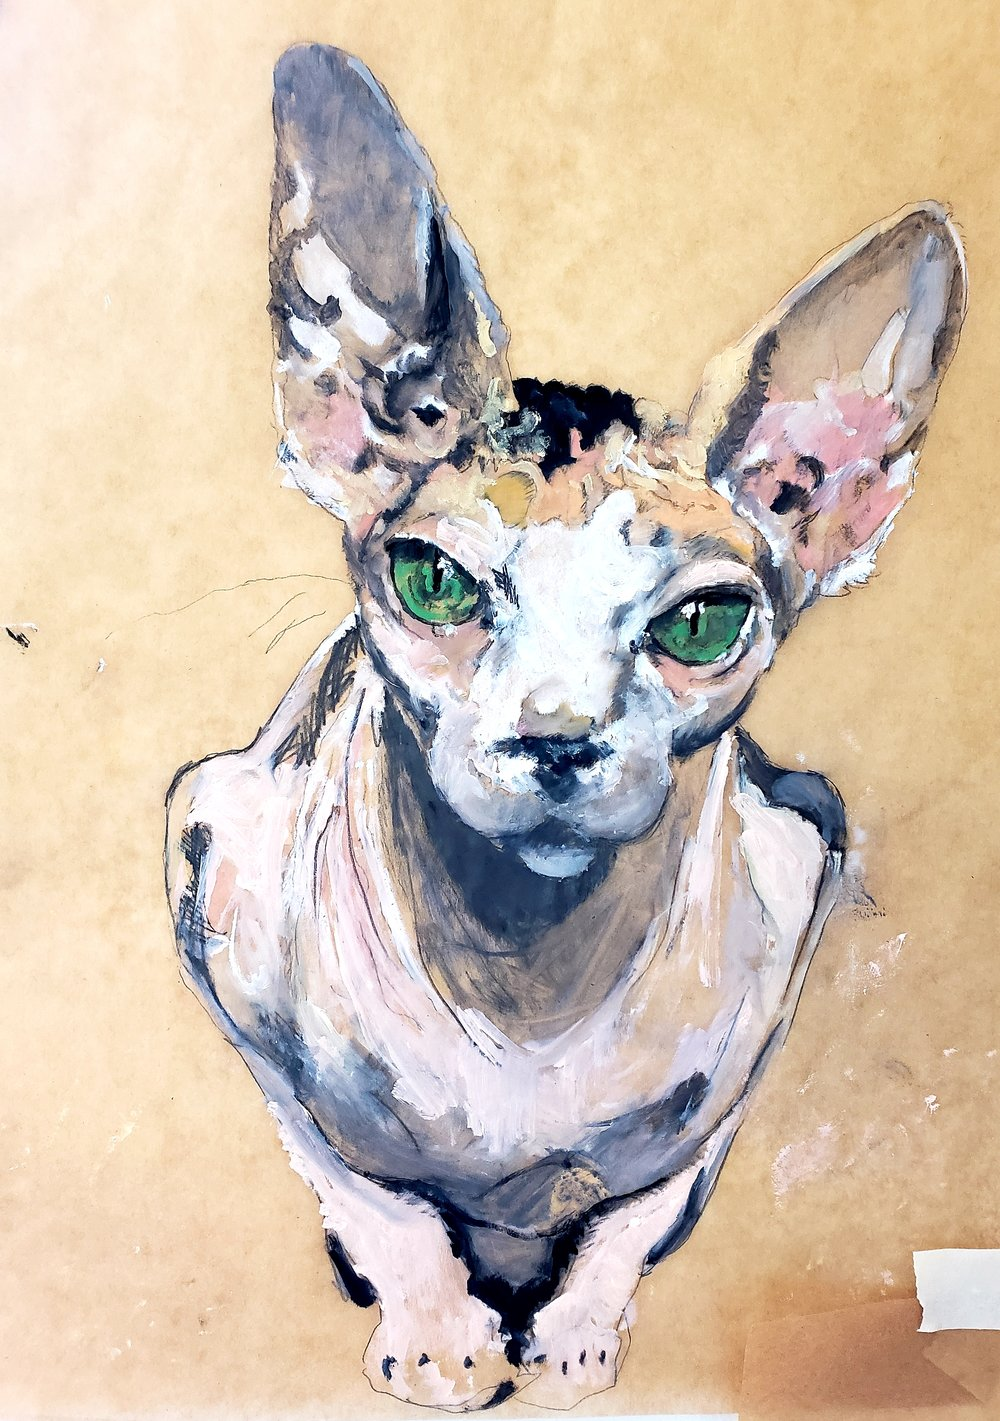 Big Eyed Bald Cat, 2018